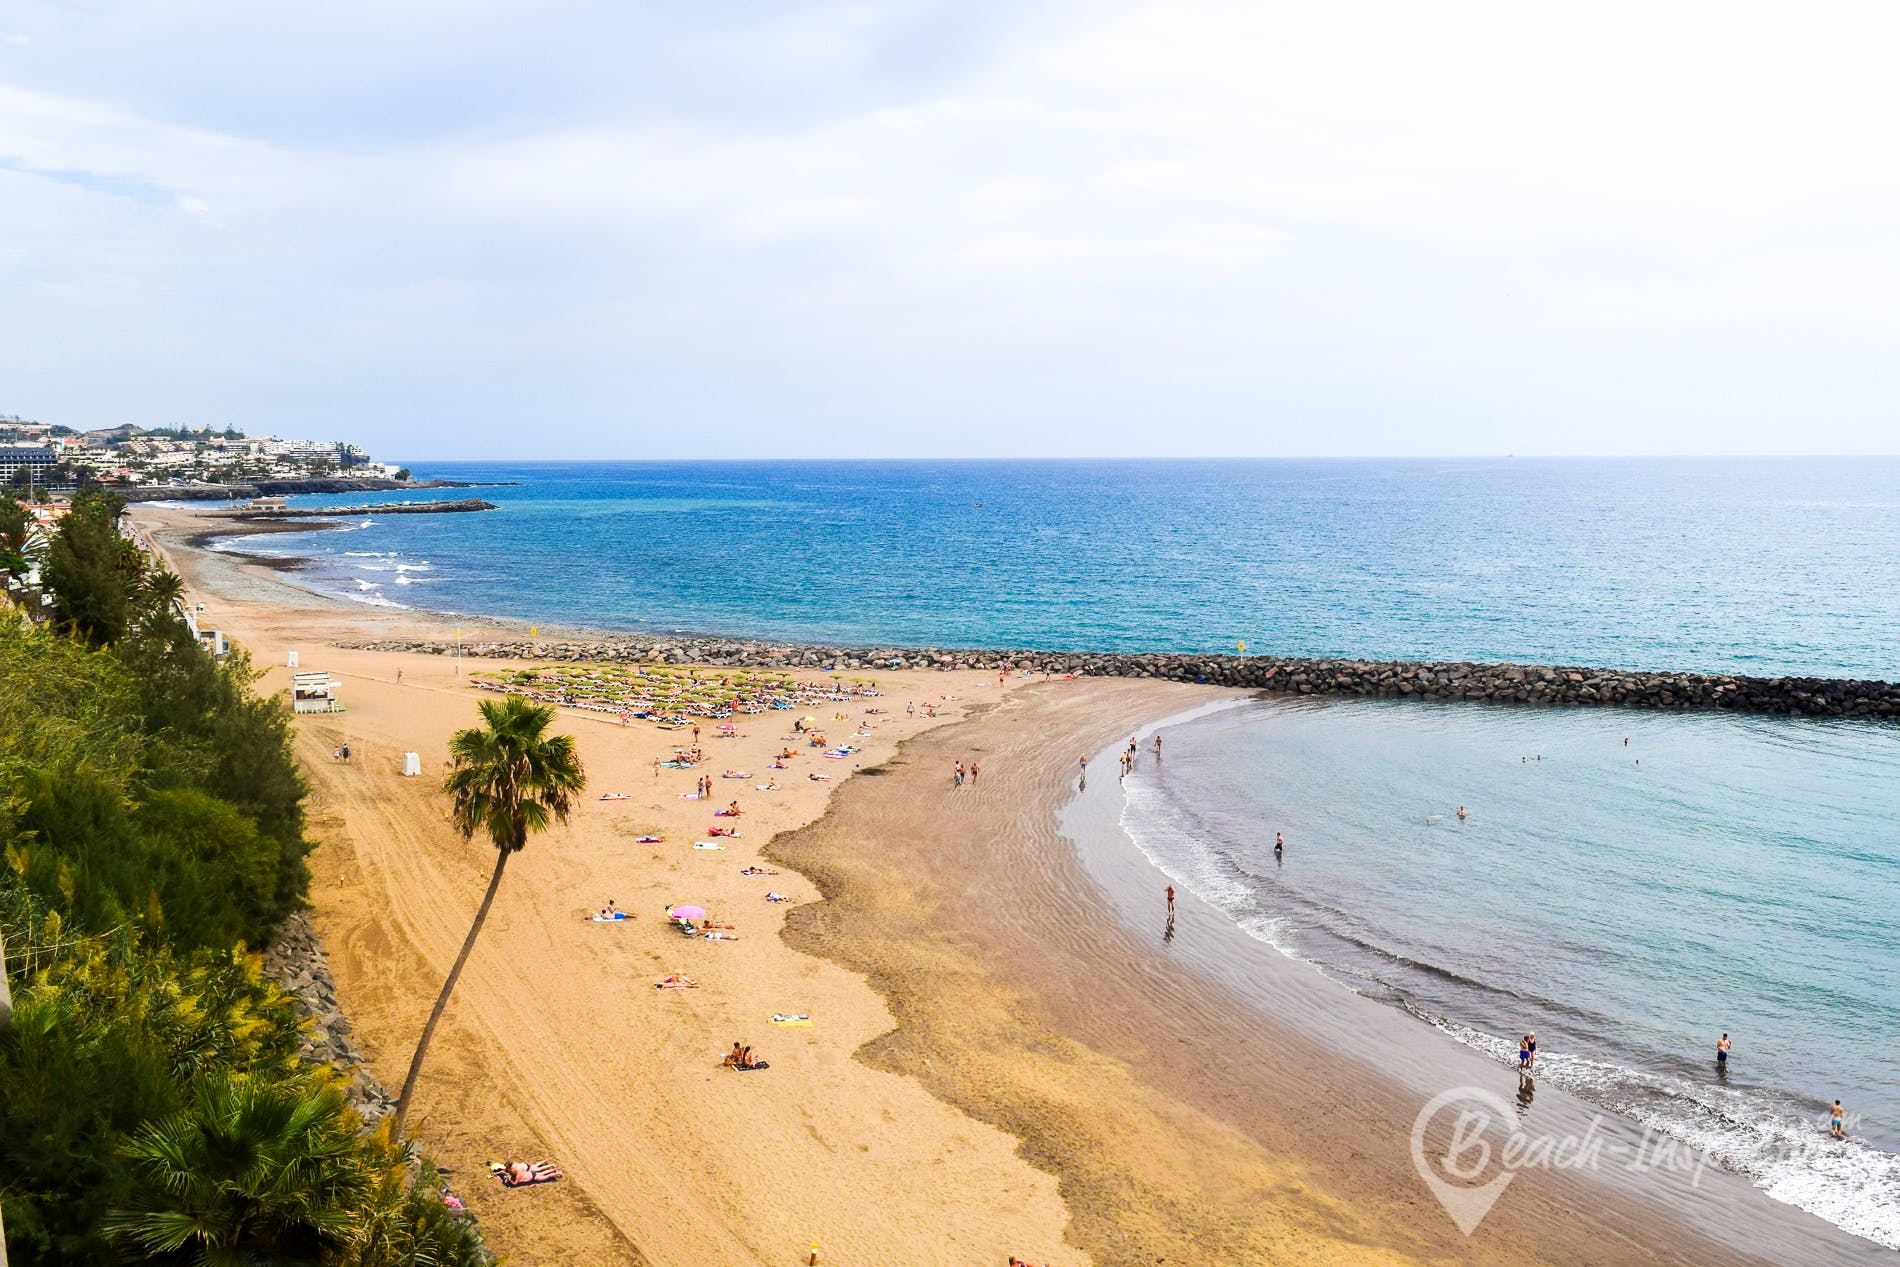 Beach Playa de Veril, Gran Canaria, Spain